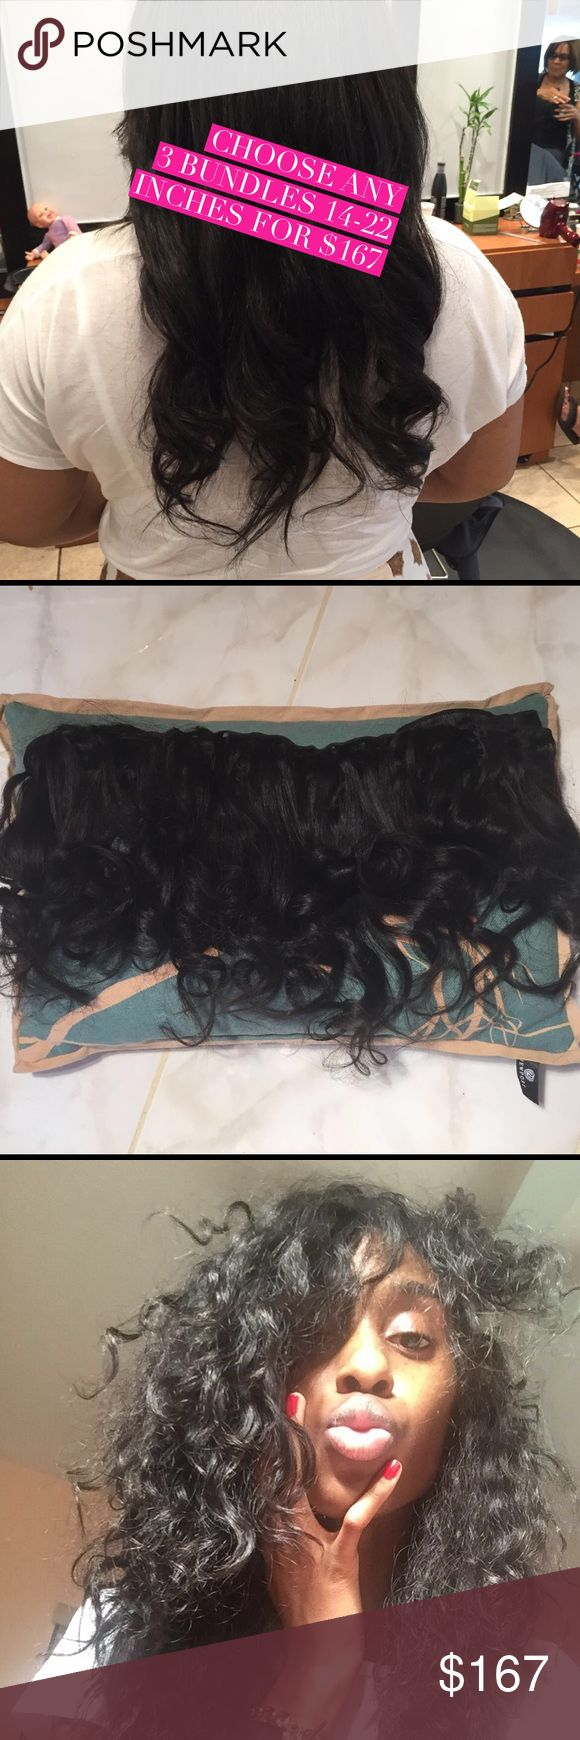 Hair extensions sale . Choose any 3 lengths This weekend ONLY Choose any 3 lengths ...14-22 inches for $167. US Shipping only. Bags